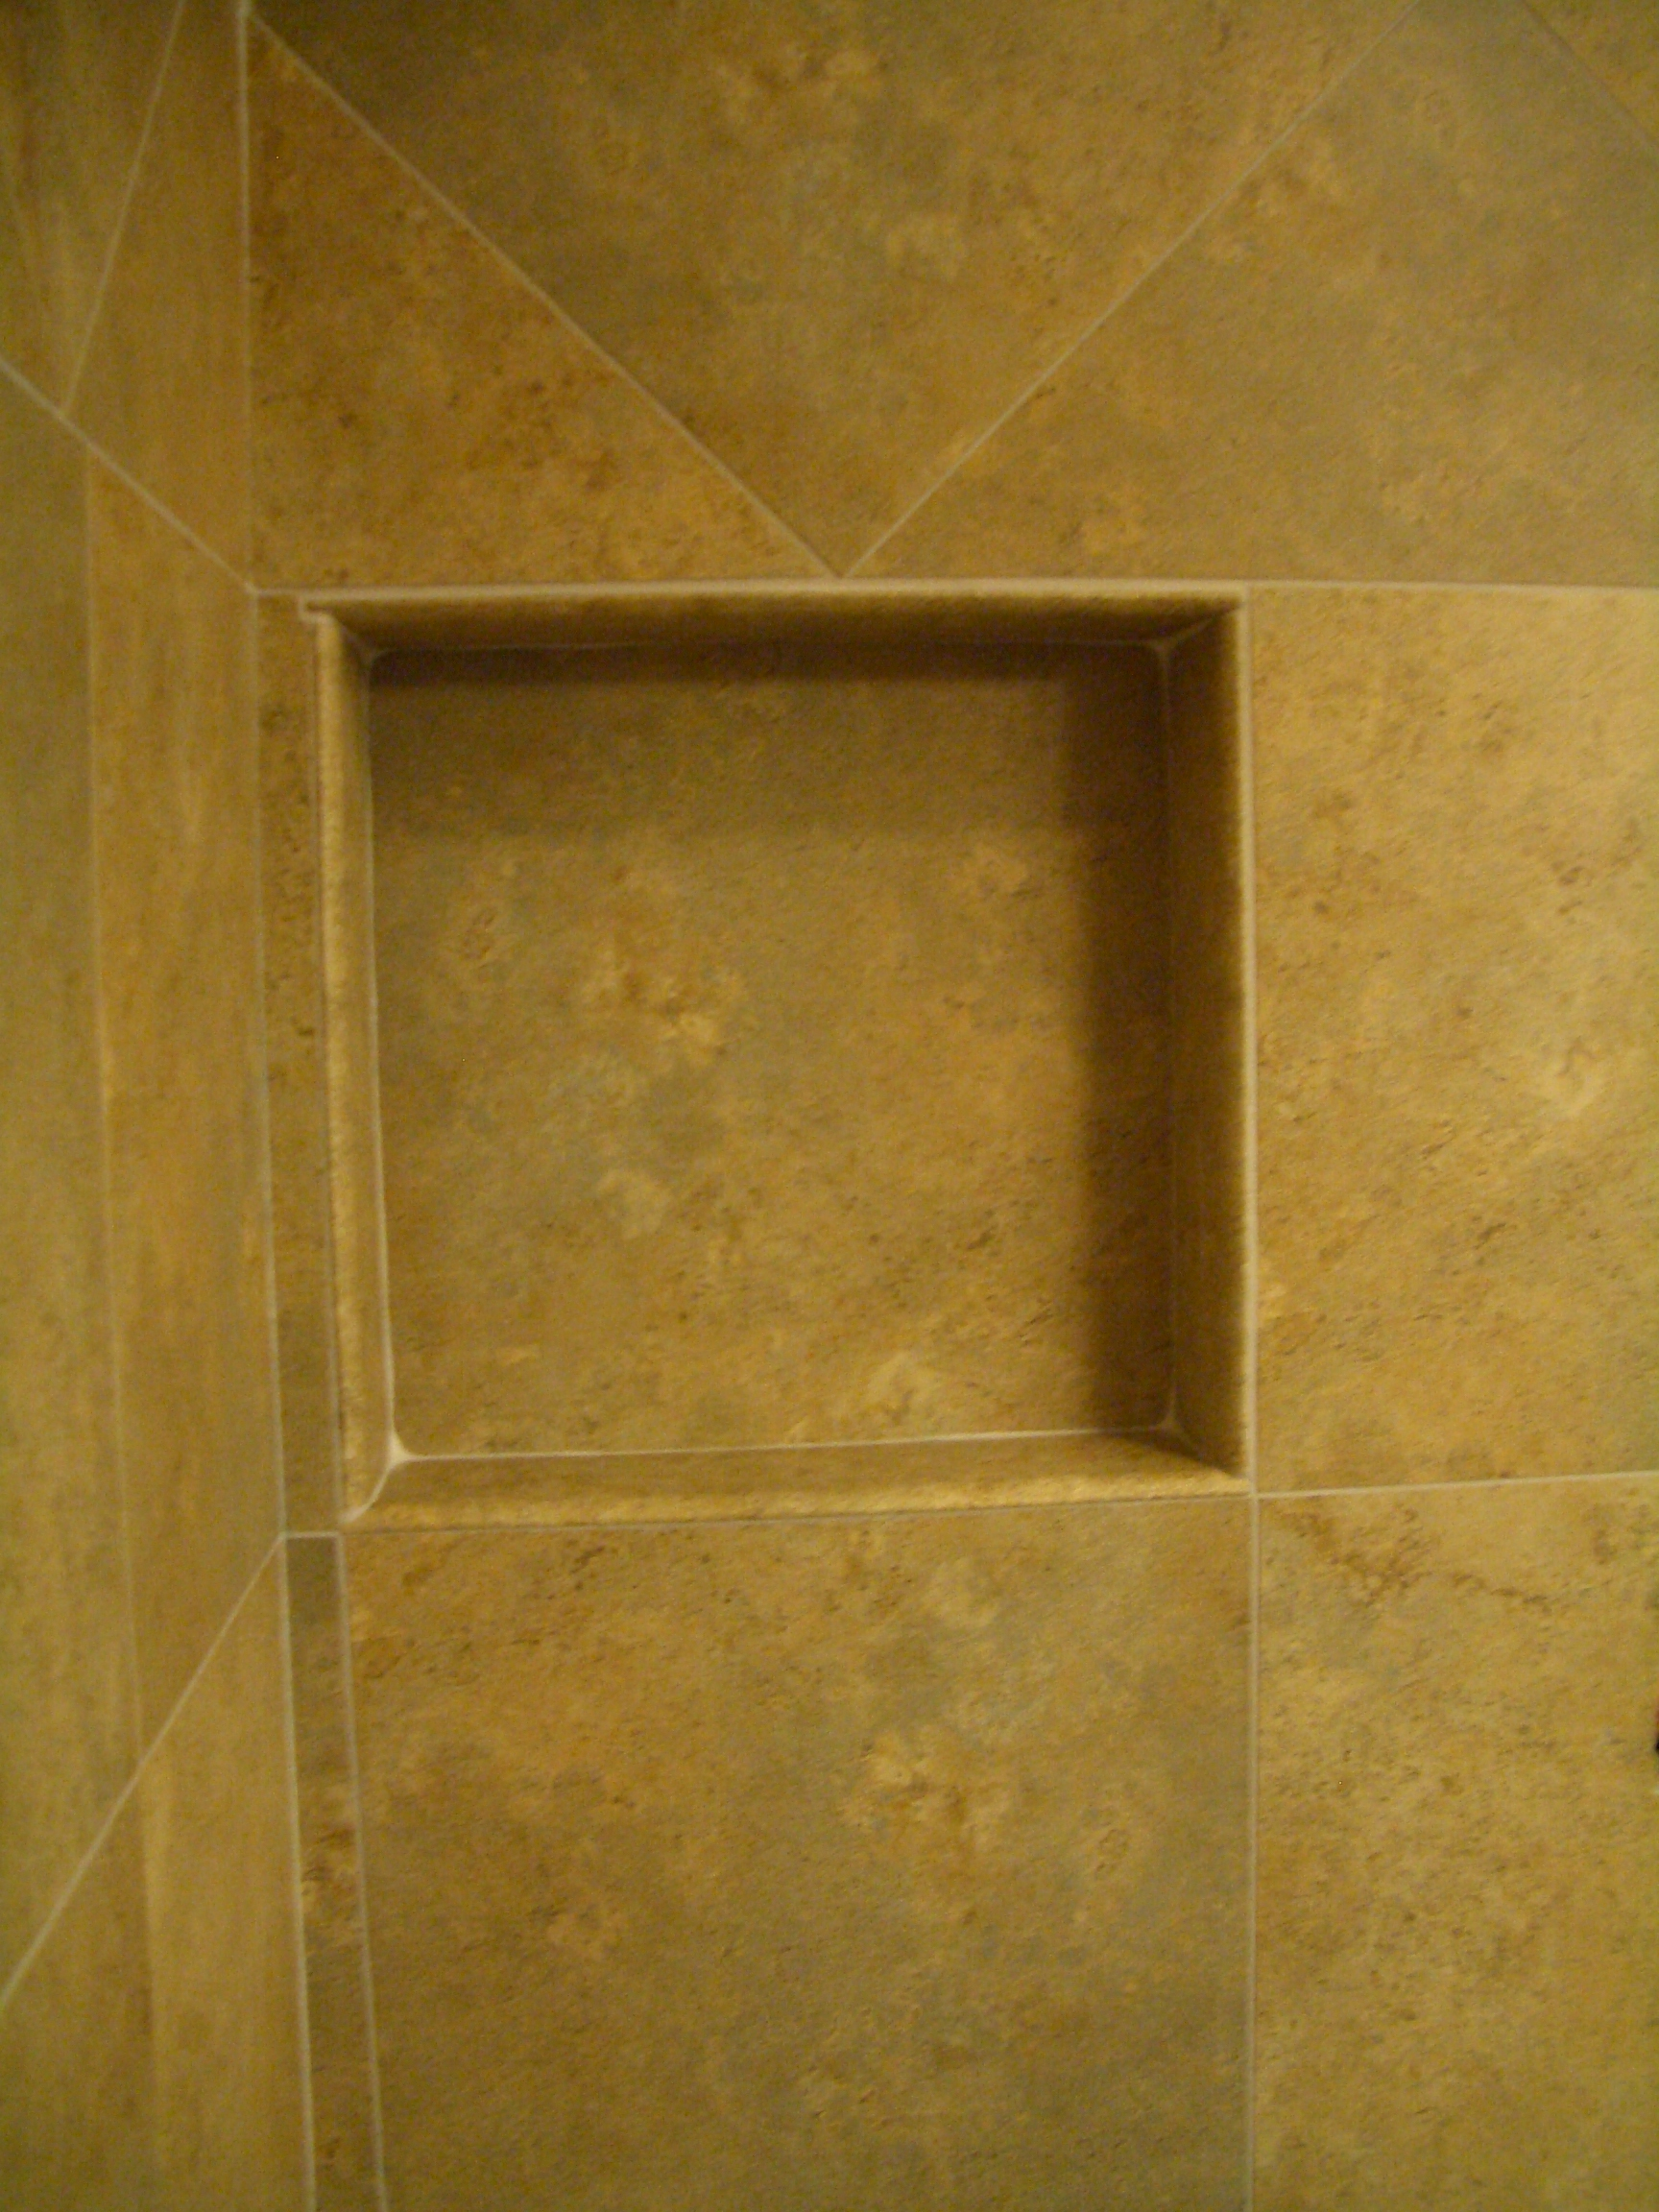 How To Build A Niche For Your Shower Part 1